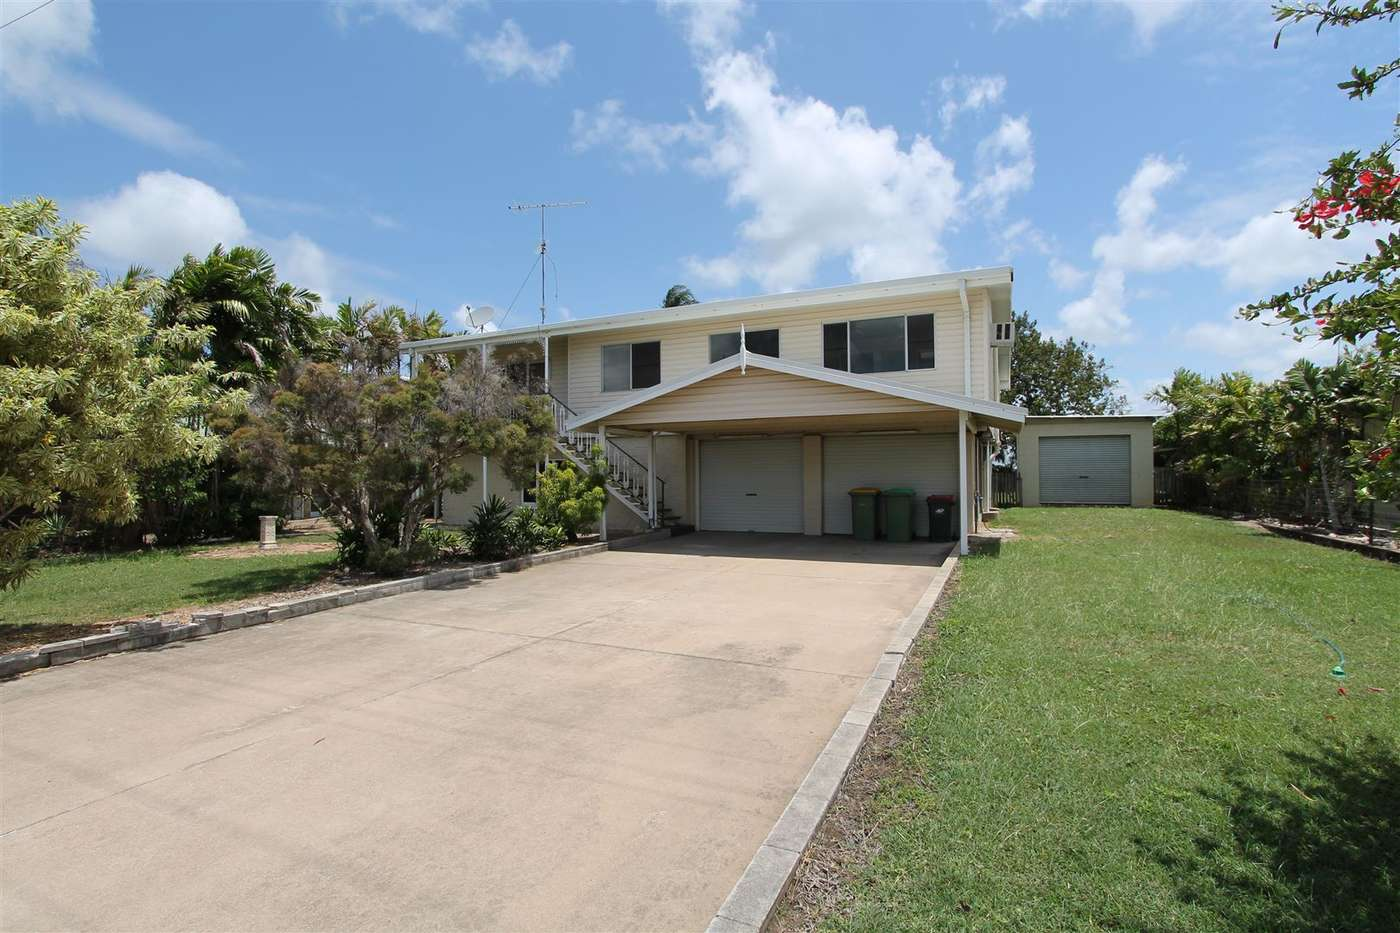 Main view of Homely house listing, 41 Stace Road, Ayr, QLD 4807